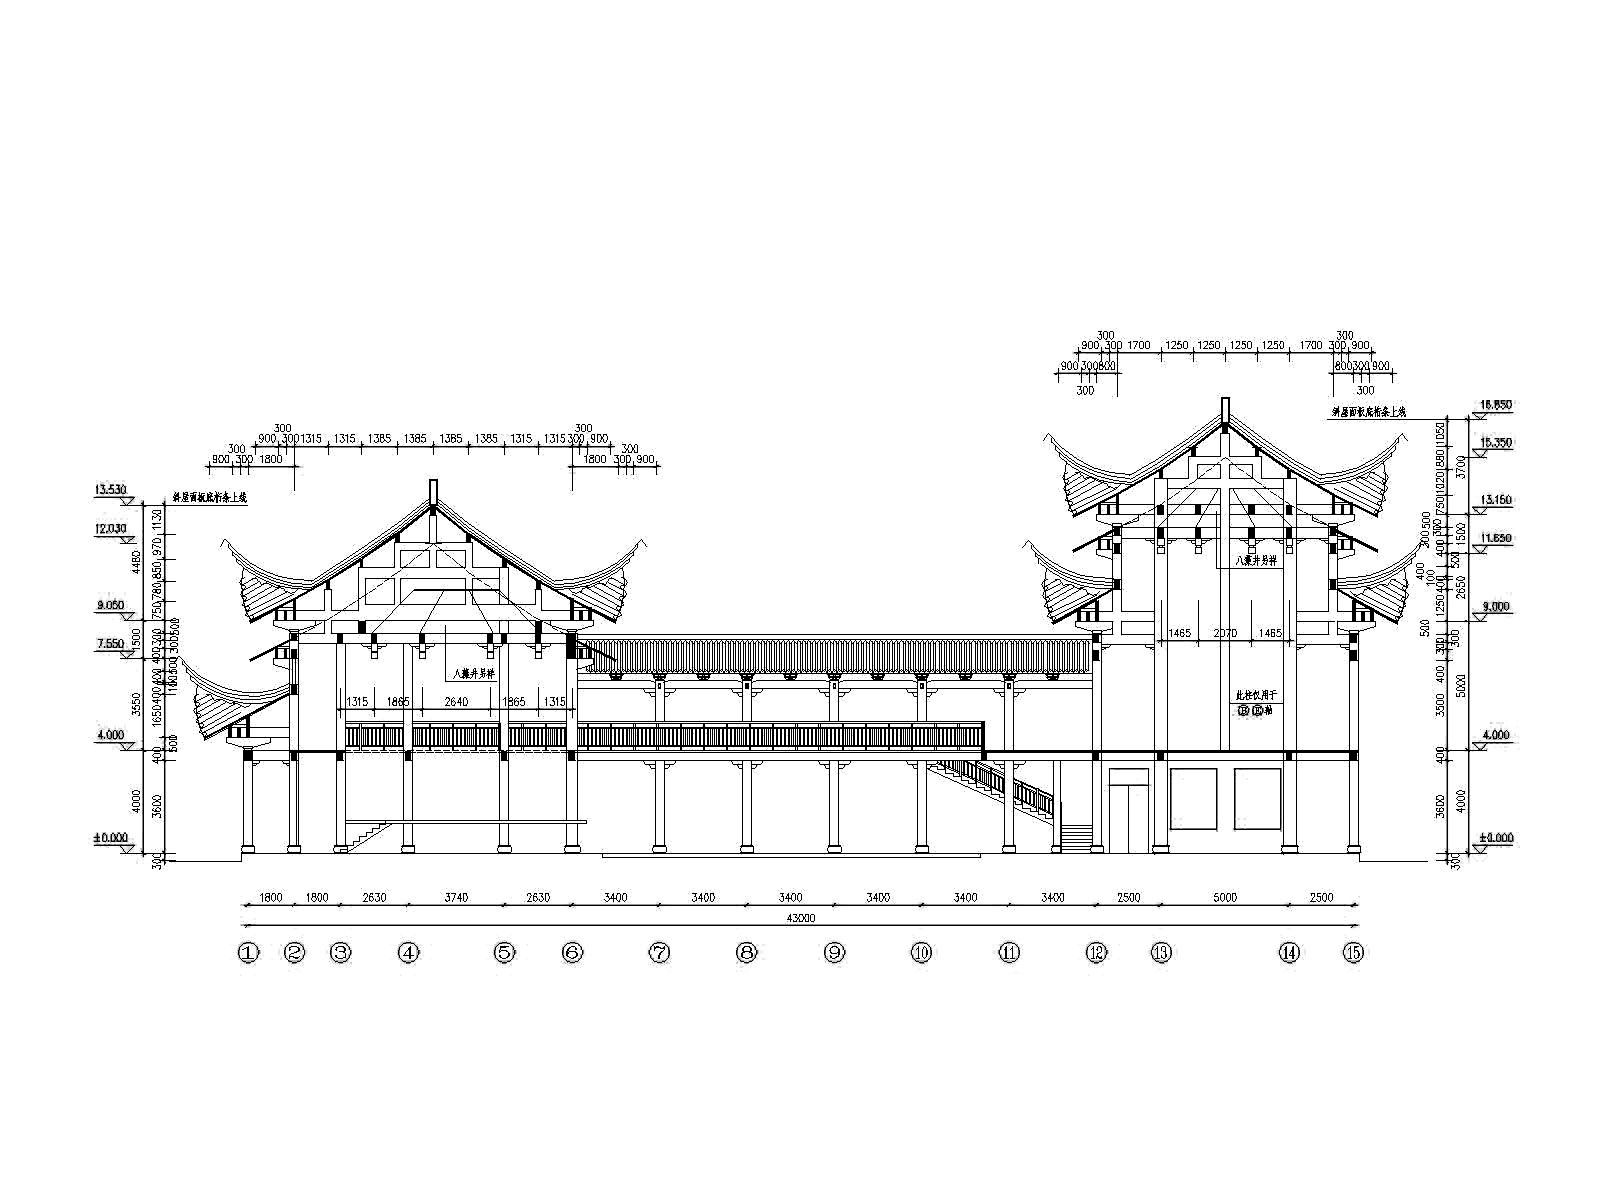 Chinese Architecture CAD Drawings-Stage, ancestral hall ... on autocad architecture, autocad roof drawings, construction drawings floor plan, autocad projects, sketchup floor plan, luxury hotel lobby floor plan, autocad blueprints, autocad floor plans with dimensions, autocad interior design, pool table autocad floor plan, autocad 3d house plan, commercial space floor plan, cad furniture blocks plan, autocad 2d floor plan, autocad home, autocad floor plan symbols, autocad floor plan windows, autocad floor plan templates, autocad practice drawings, autocad raster design,